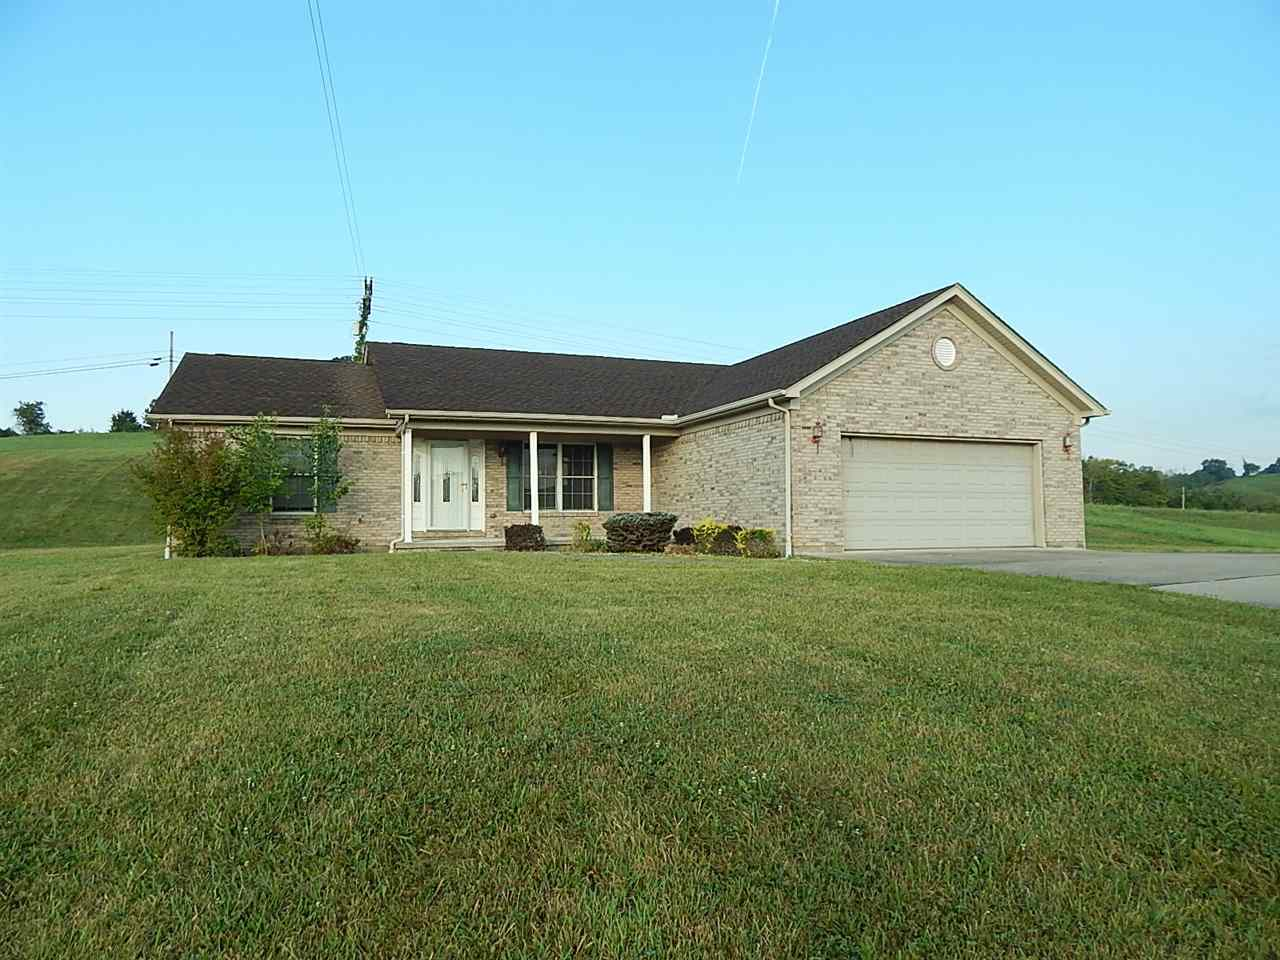 Photo 1 for 111 Hartland Falmouth, KY 41040